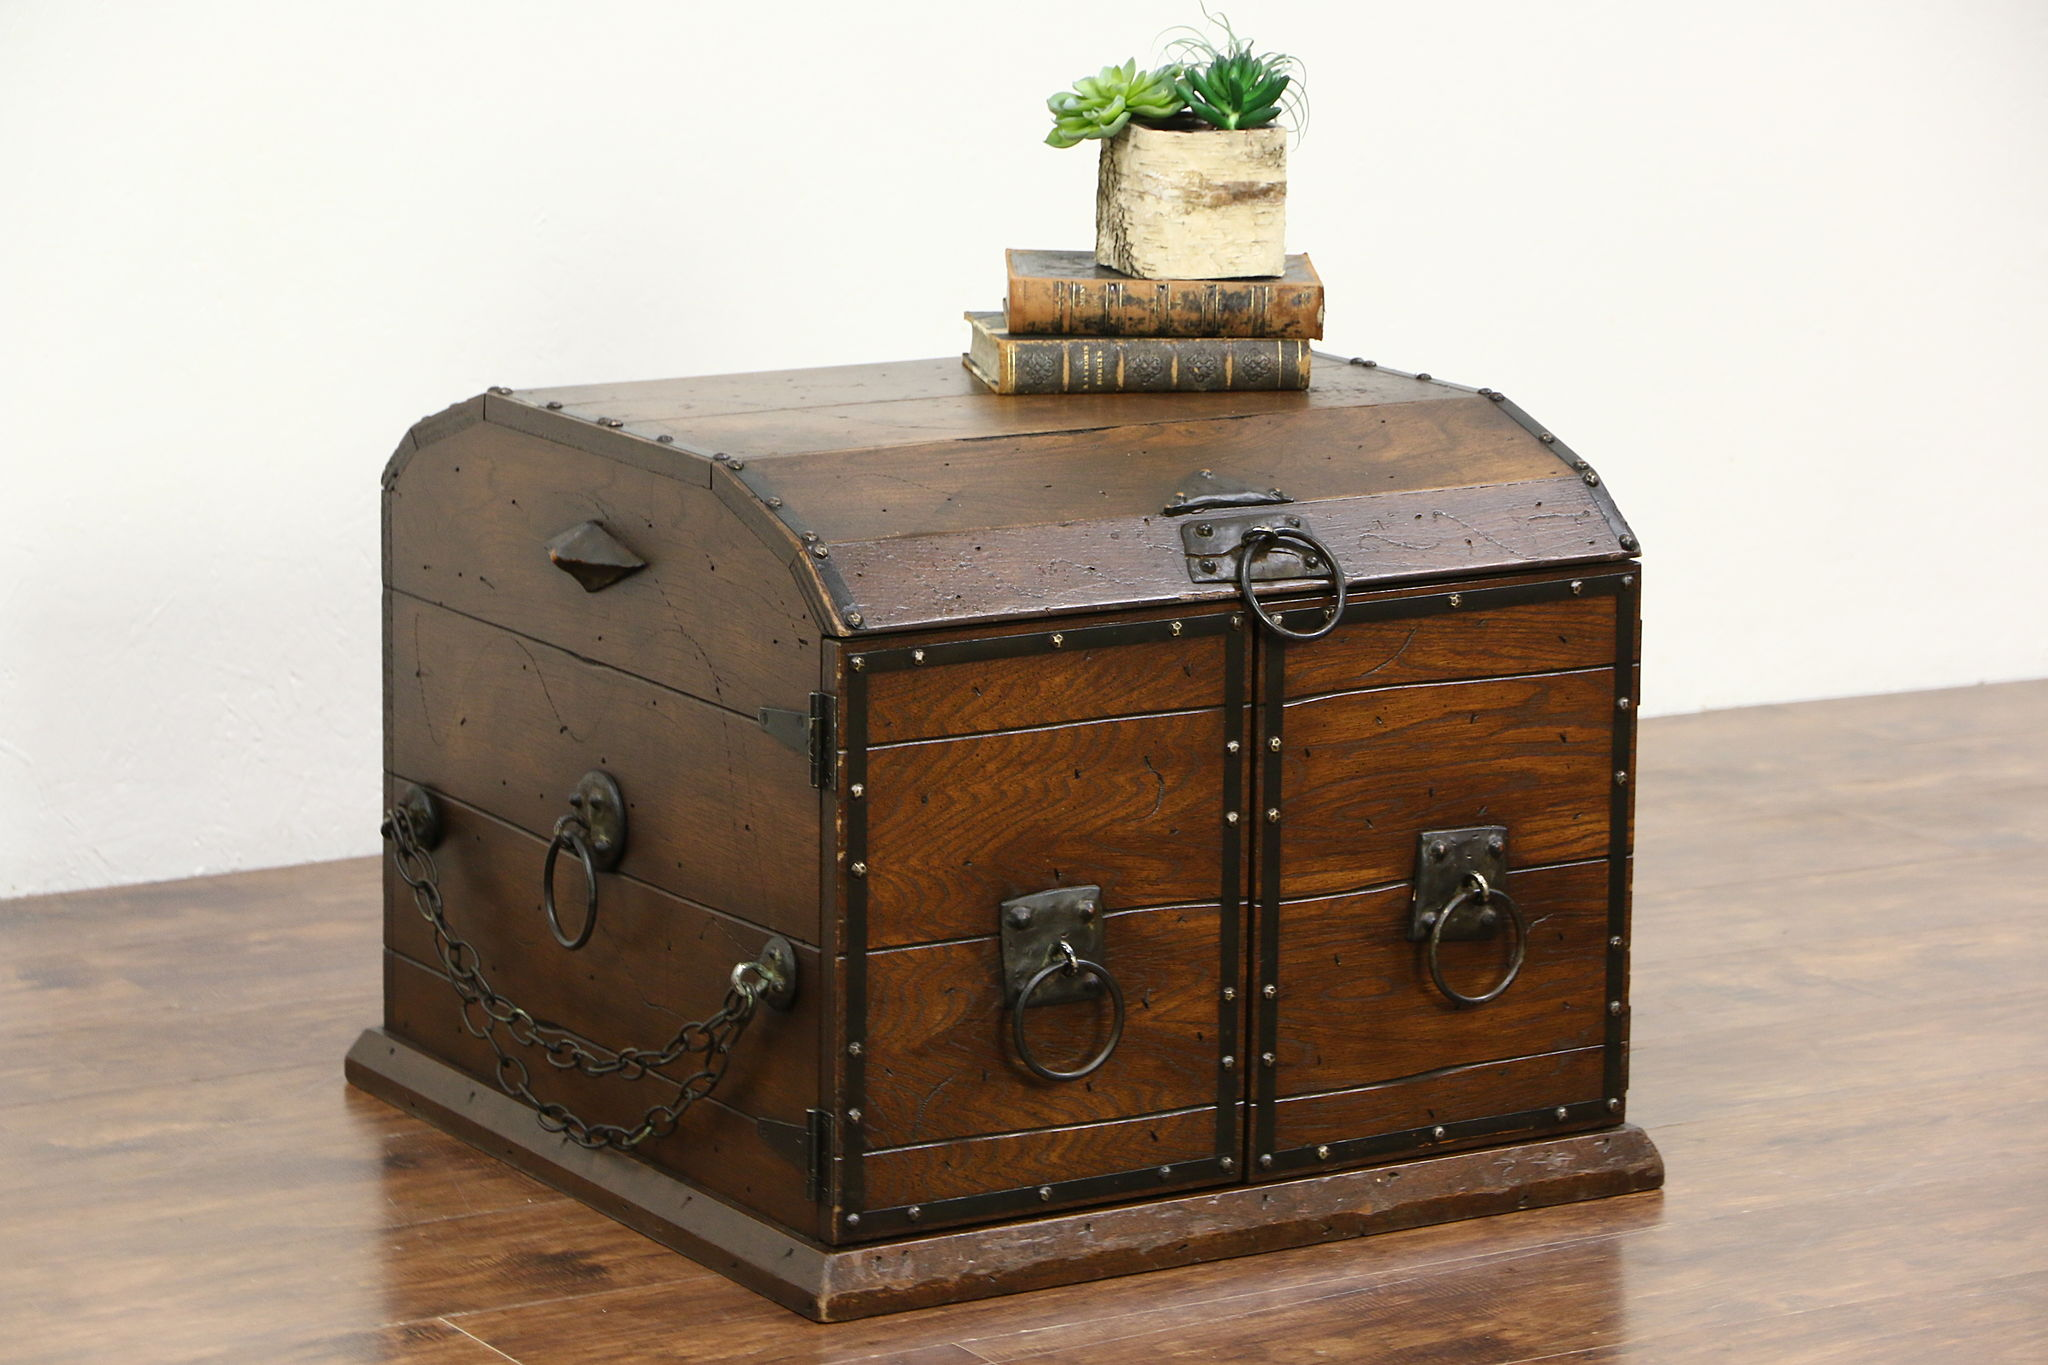 Medieval Pirate Chest Coffee Table, Vintage Oak Trunk